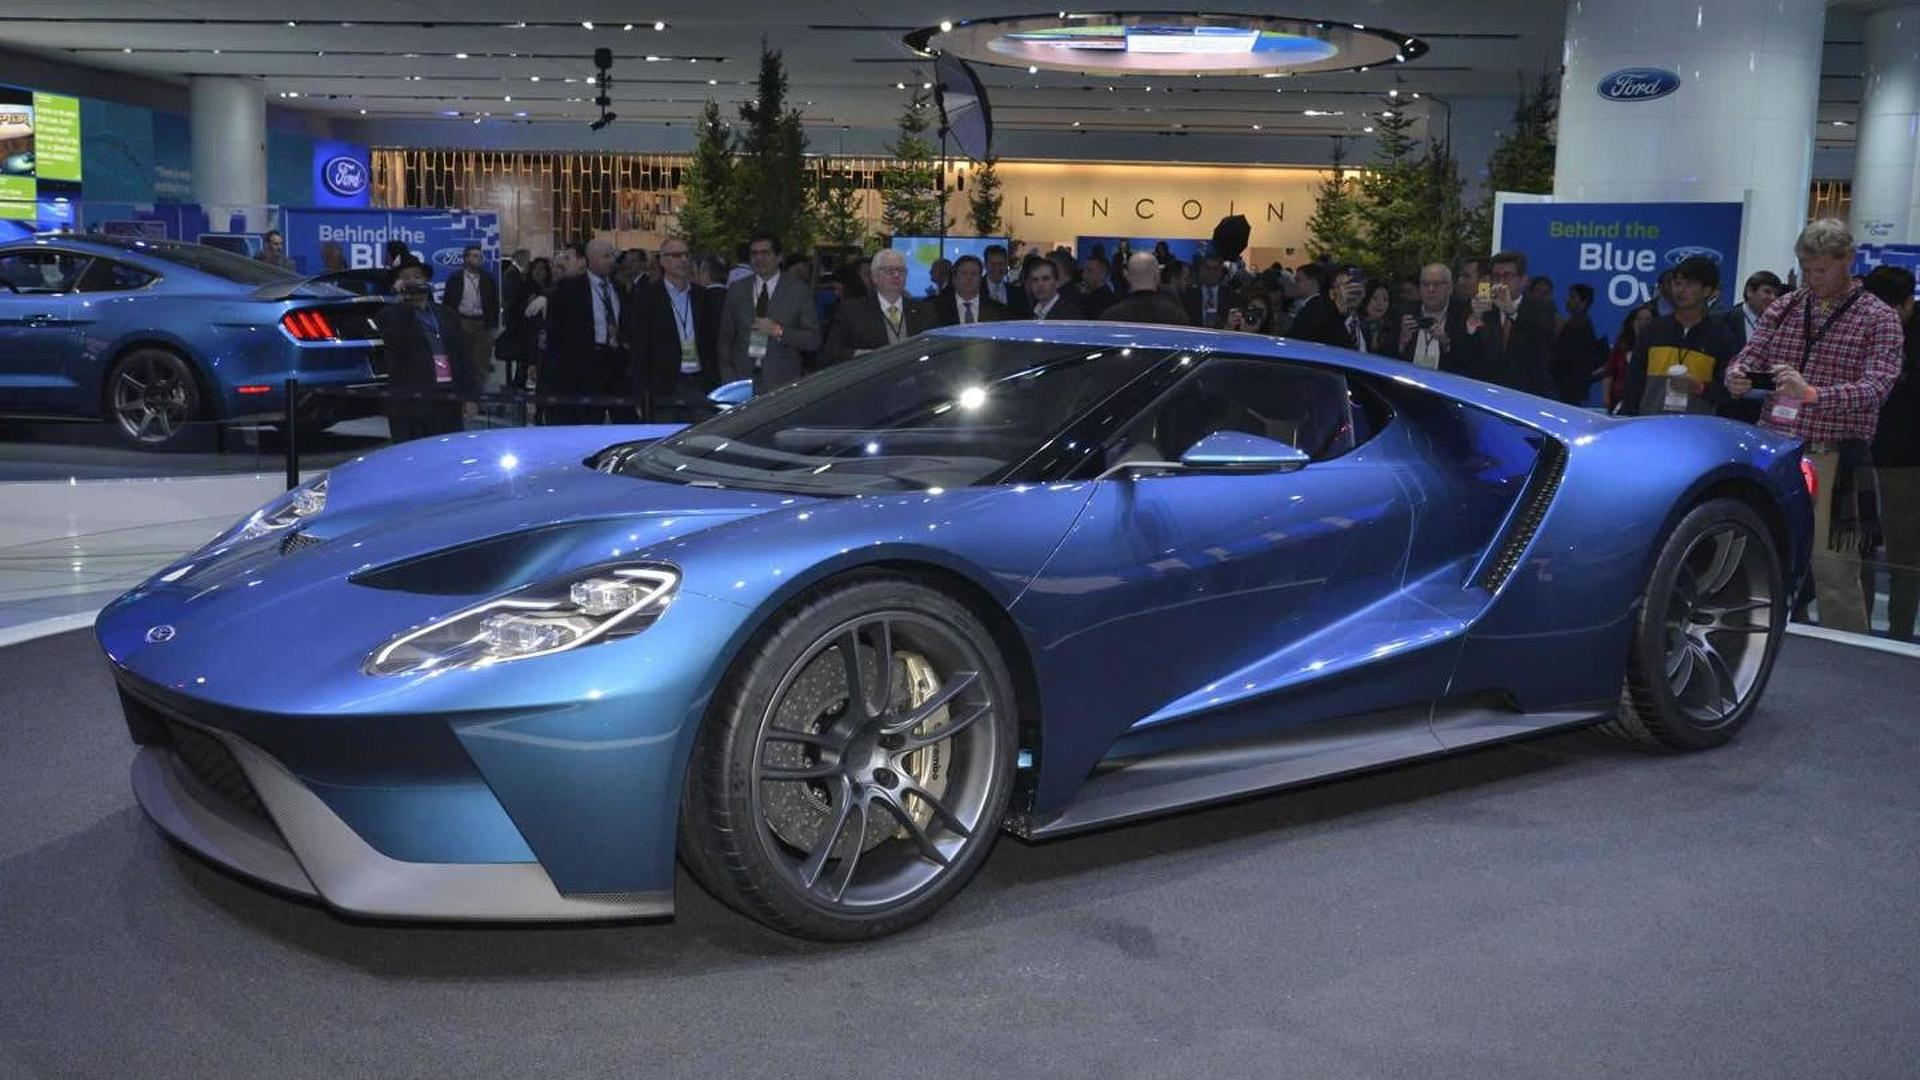 Ford Hints Gts Ecoboost V6 Could Be Offered As Crate Engine Ranger Fuse Box Layout 19 99 Show